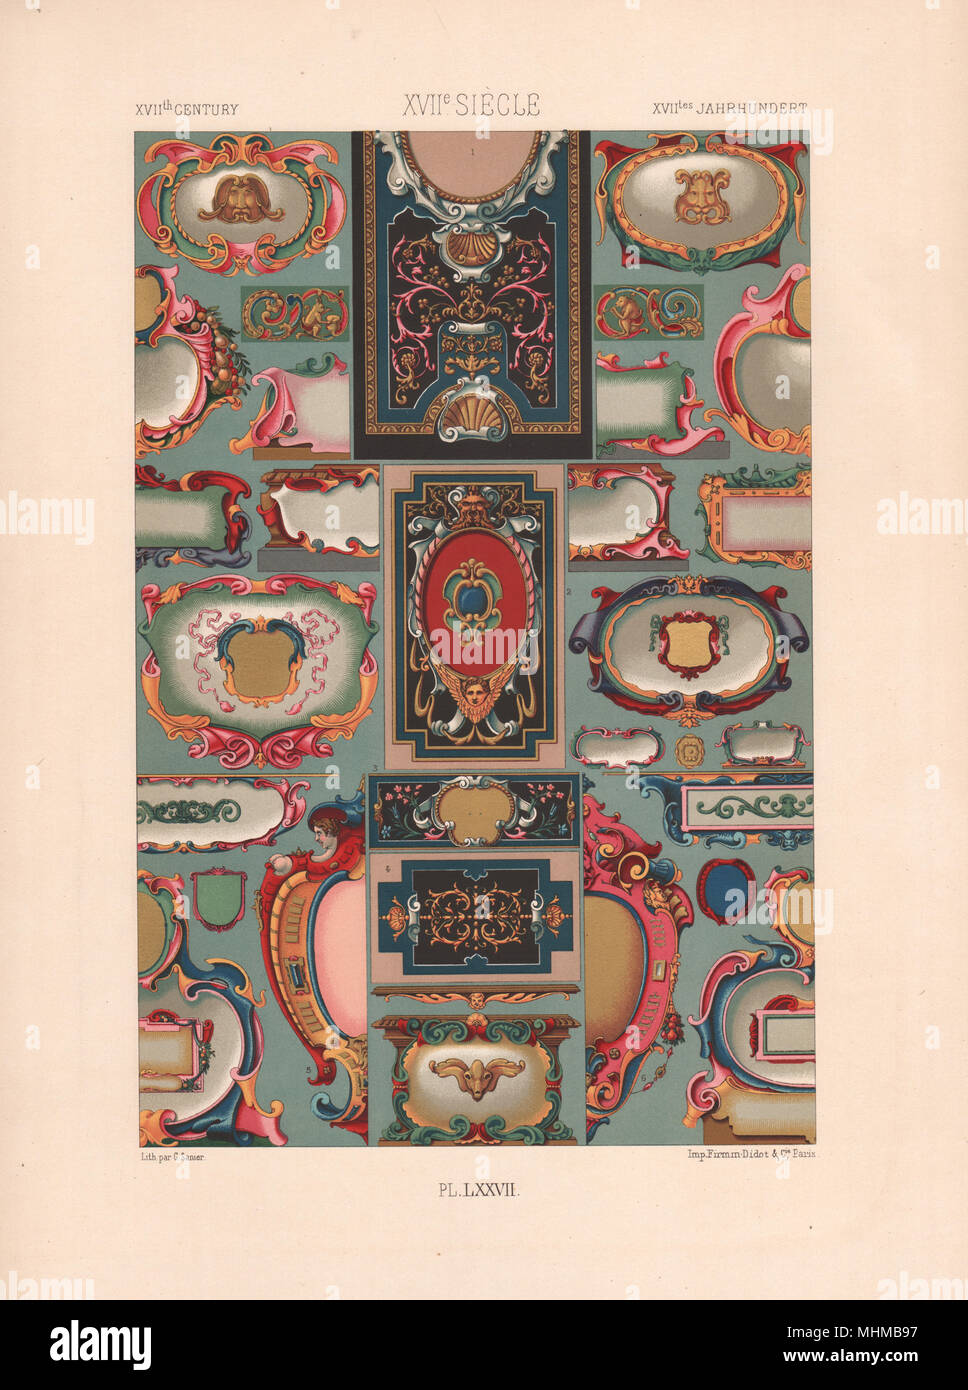 RACINET ORNEMENT POLYCHROME 77 Early 17th century Baroque art pattern c1885 - Stock Image